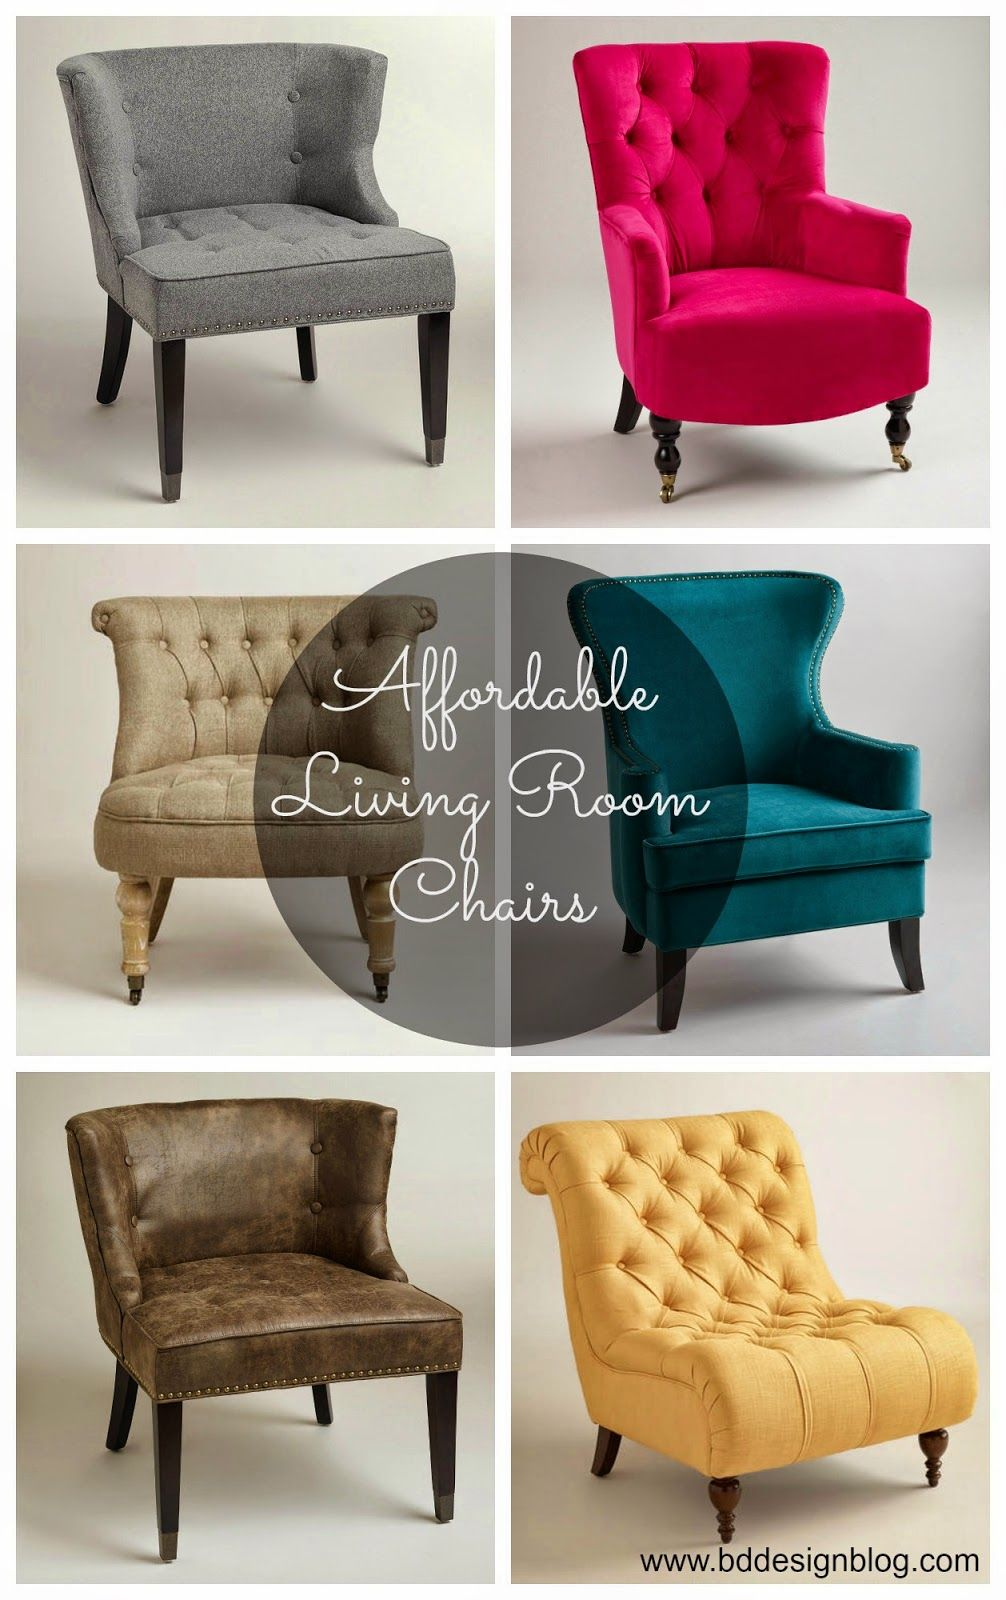 Affordable living room chairs diy ideas furniture - Unique living room furniture ...